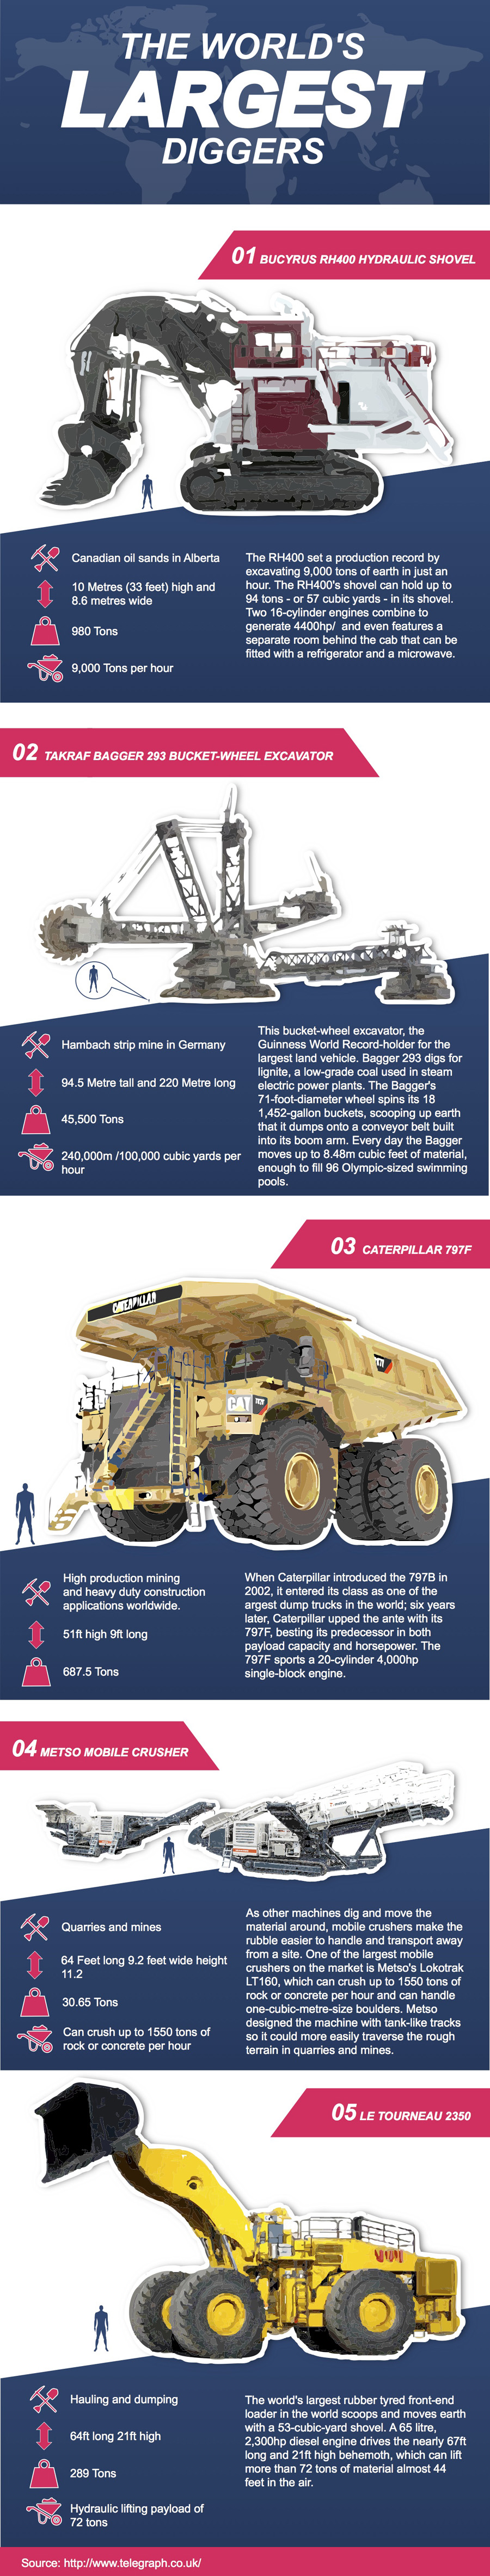 The world's largest diggers